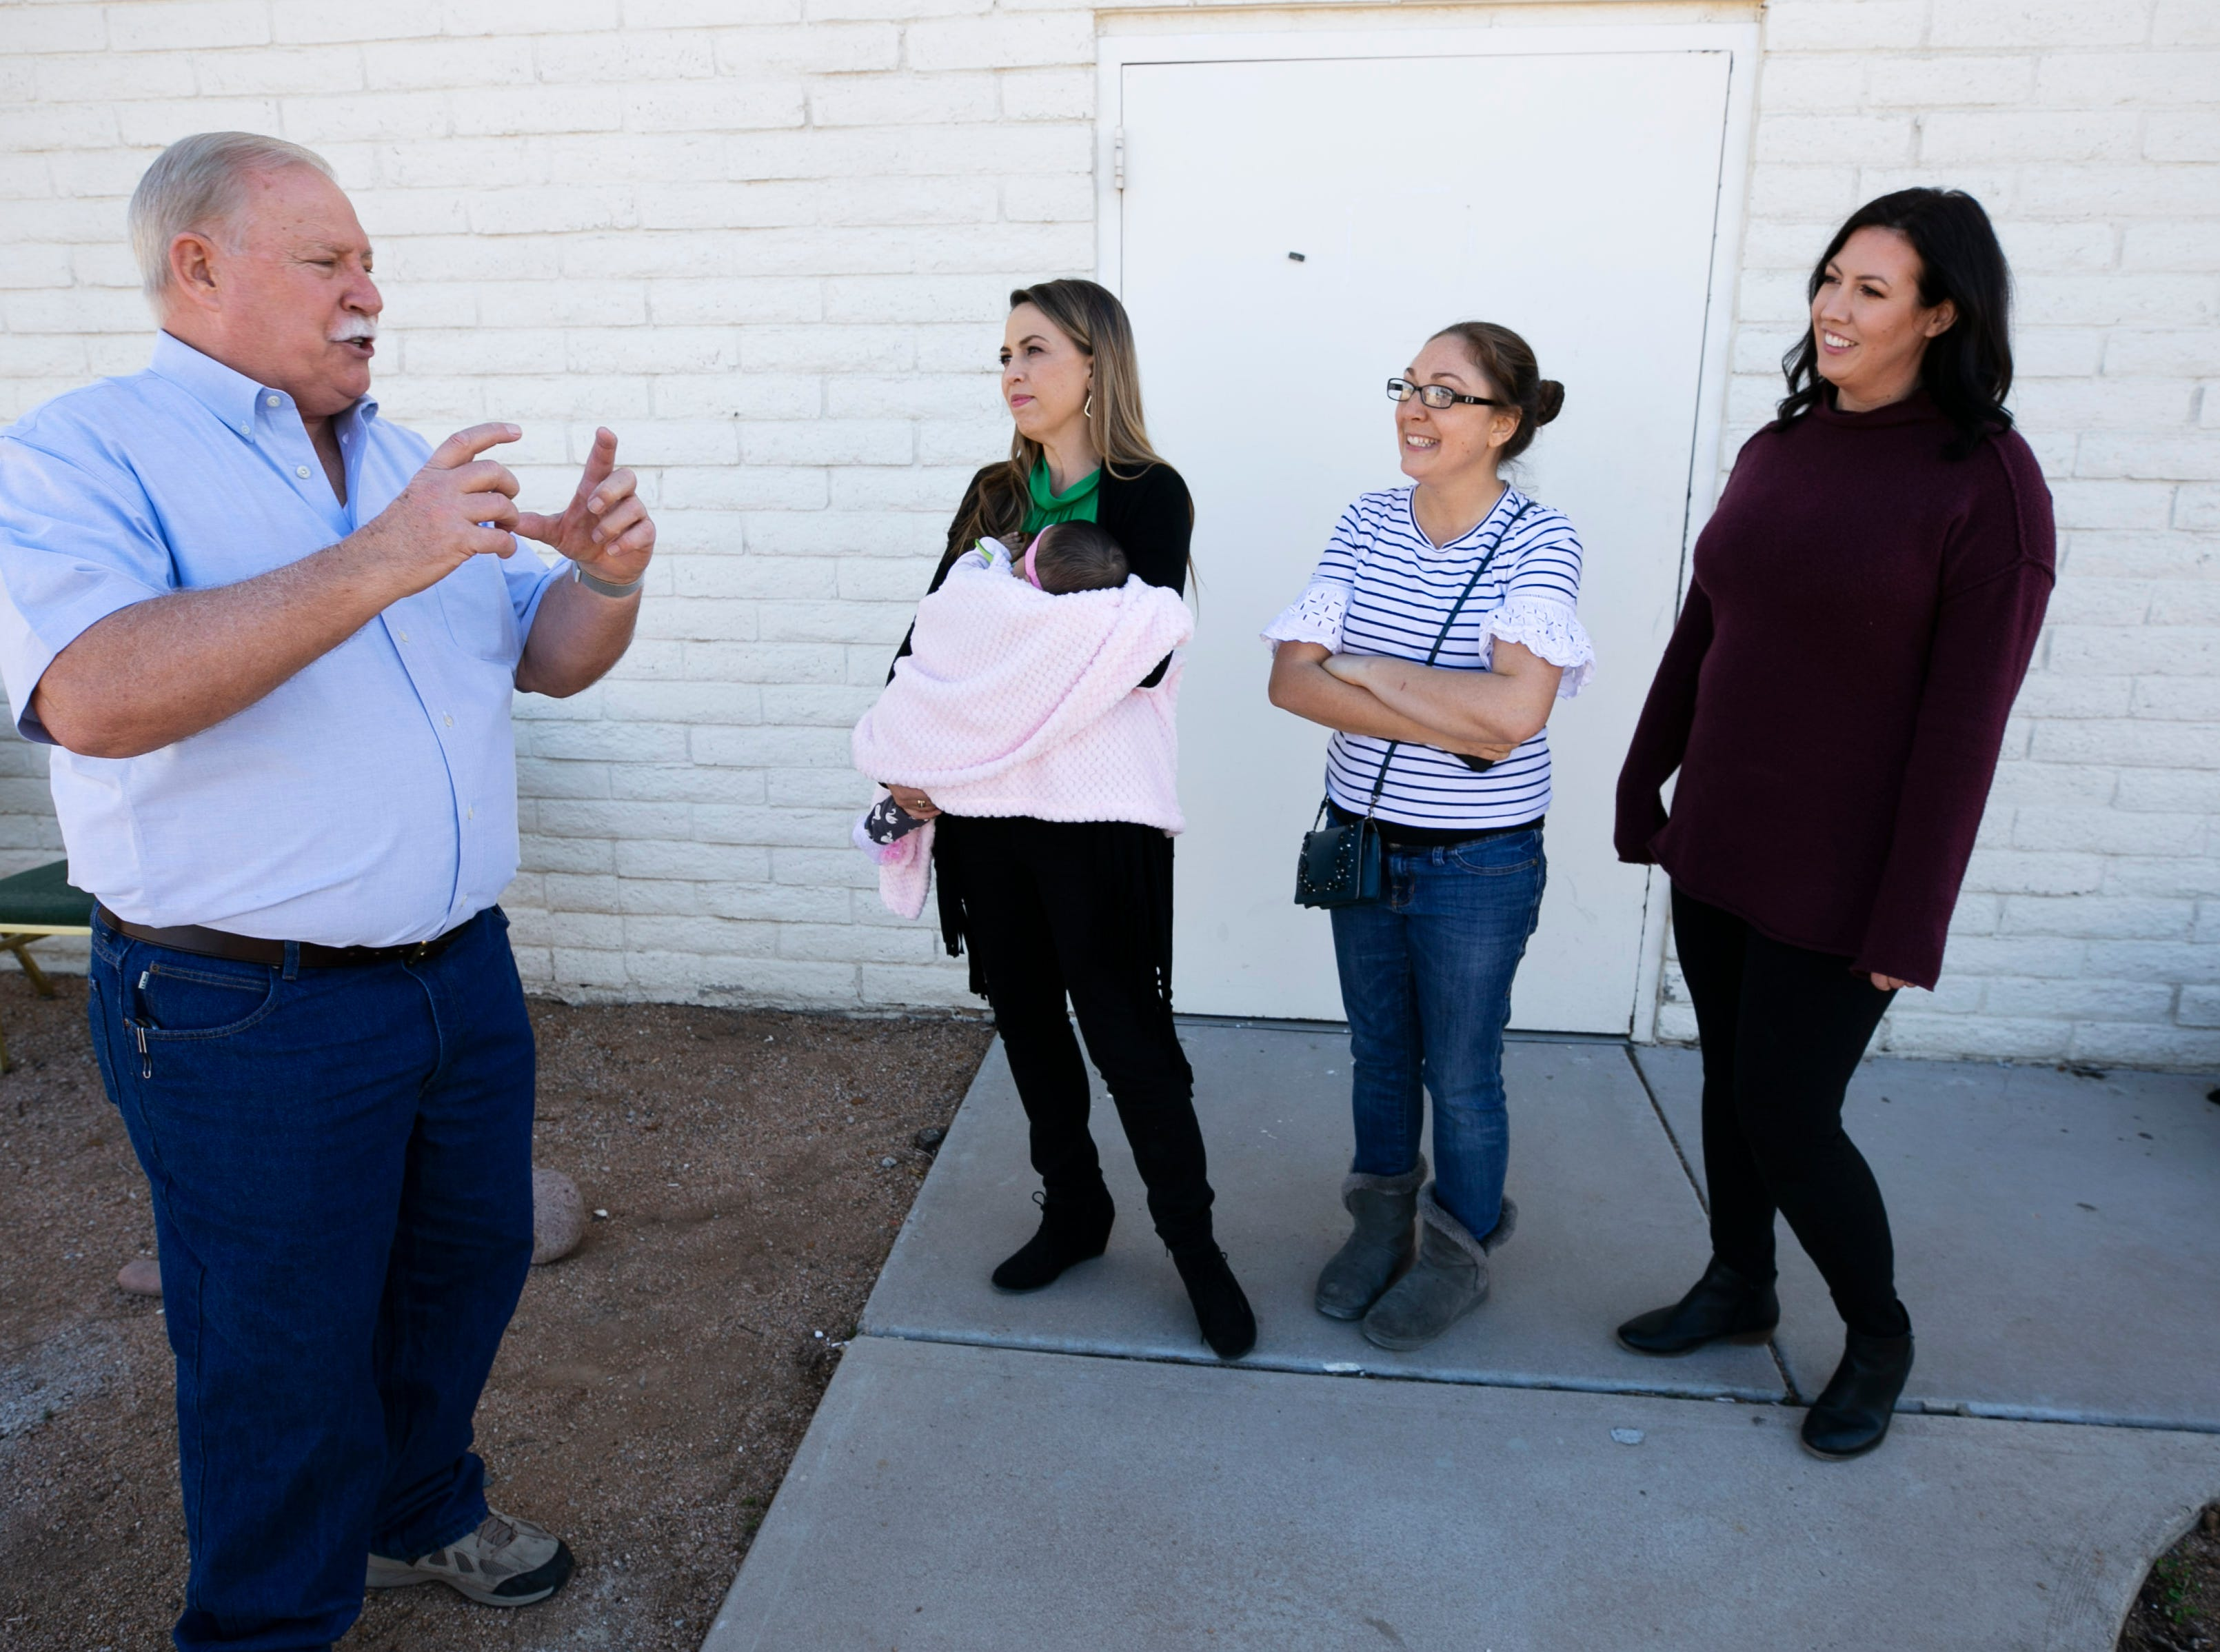 Randy Hansen of Mesa talks to Anika Robinson (from left), Angela Teachout and Susan Woodruff, co-founders of ASA Now, at the yet-to-be opened Jacob's Mission Community Center in Mesa on Jan. 14, 2019. Randy and his wife, Leslie Hansen, made a million-dollar donation to ASA Now, which is creating the community center that will provide support to foster-care families. Hansen made the donation paying off ASA Now's mortgage on the building for the community center after reading a story about ASA Now in The Arizona Republic/azcentral.com.